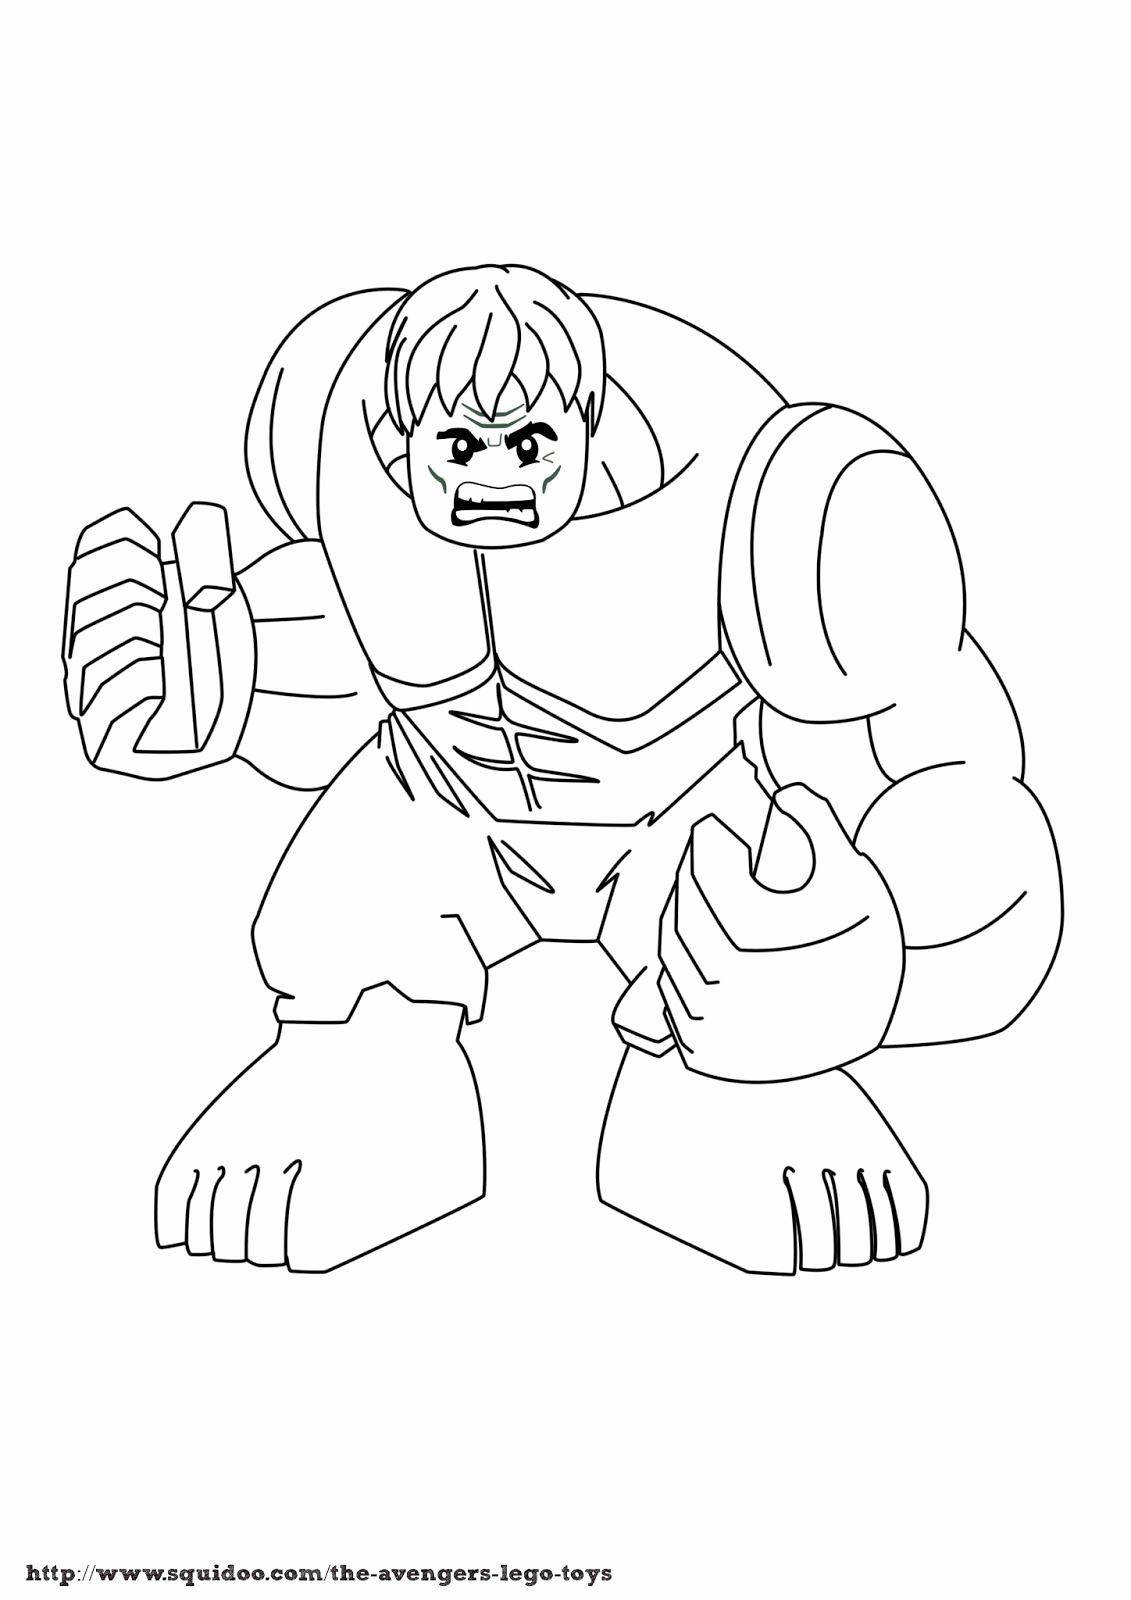 Lego Hulk Marvel Coloring Pages For Kids In 2020 Avengers Coloring Pages Avengers Coloring Superhero Coloring